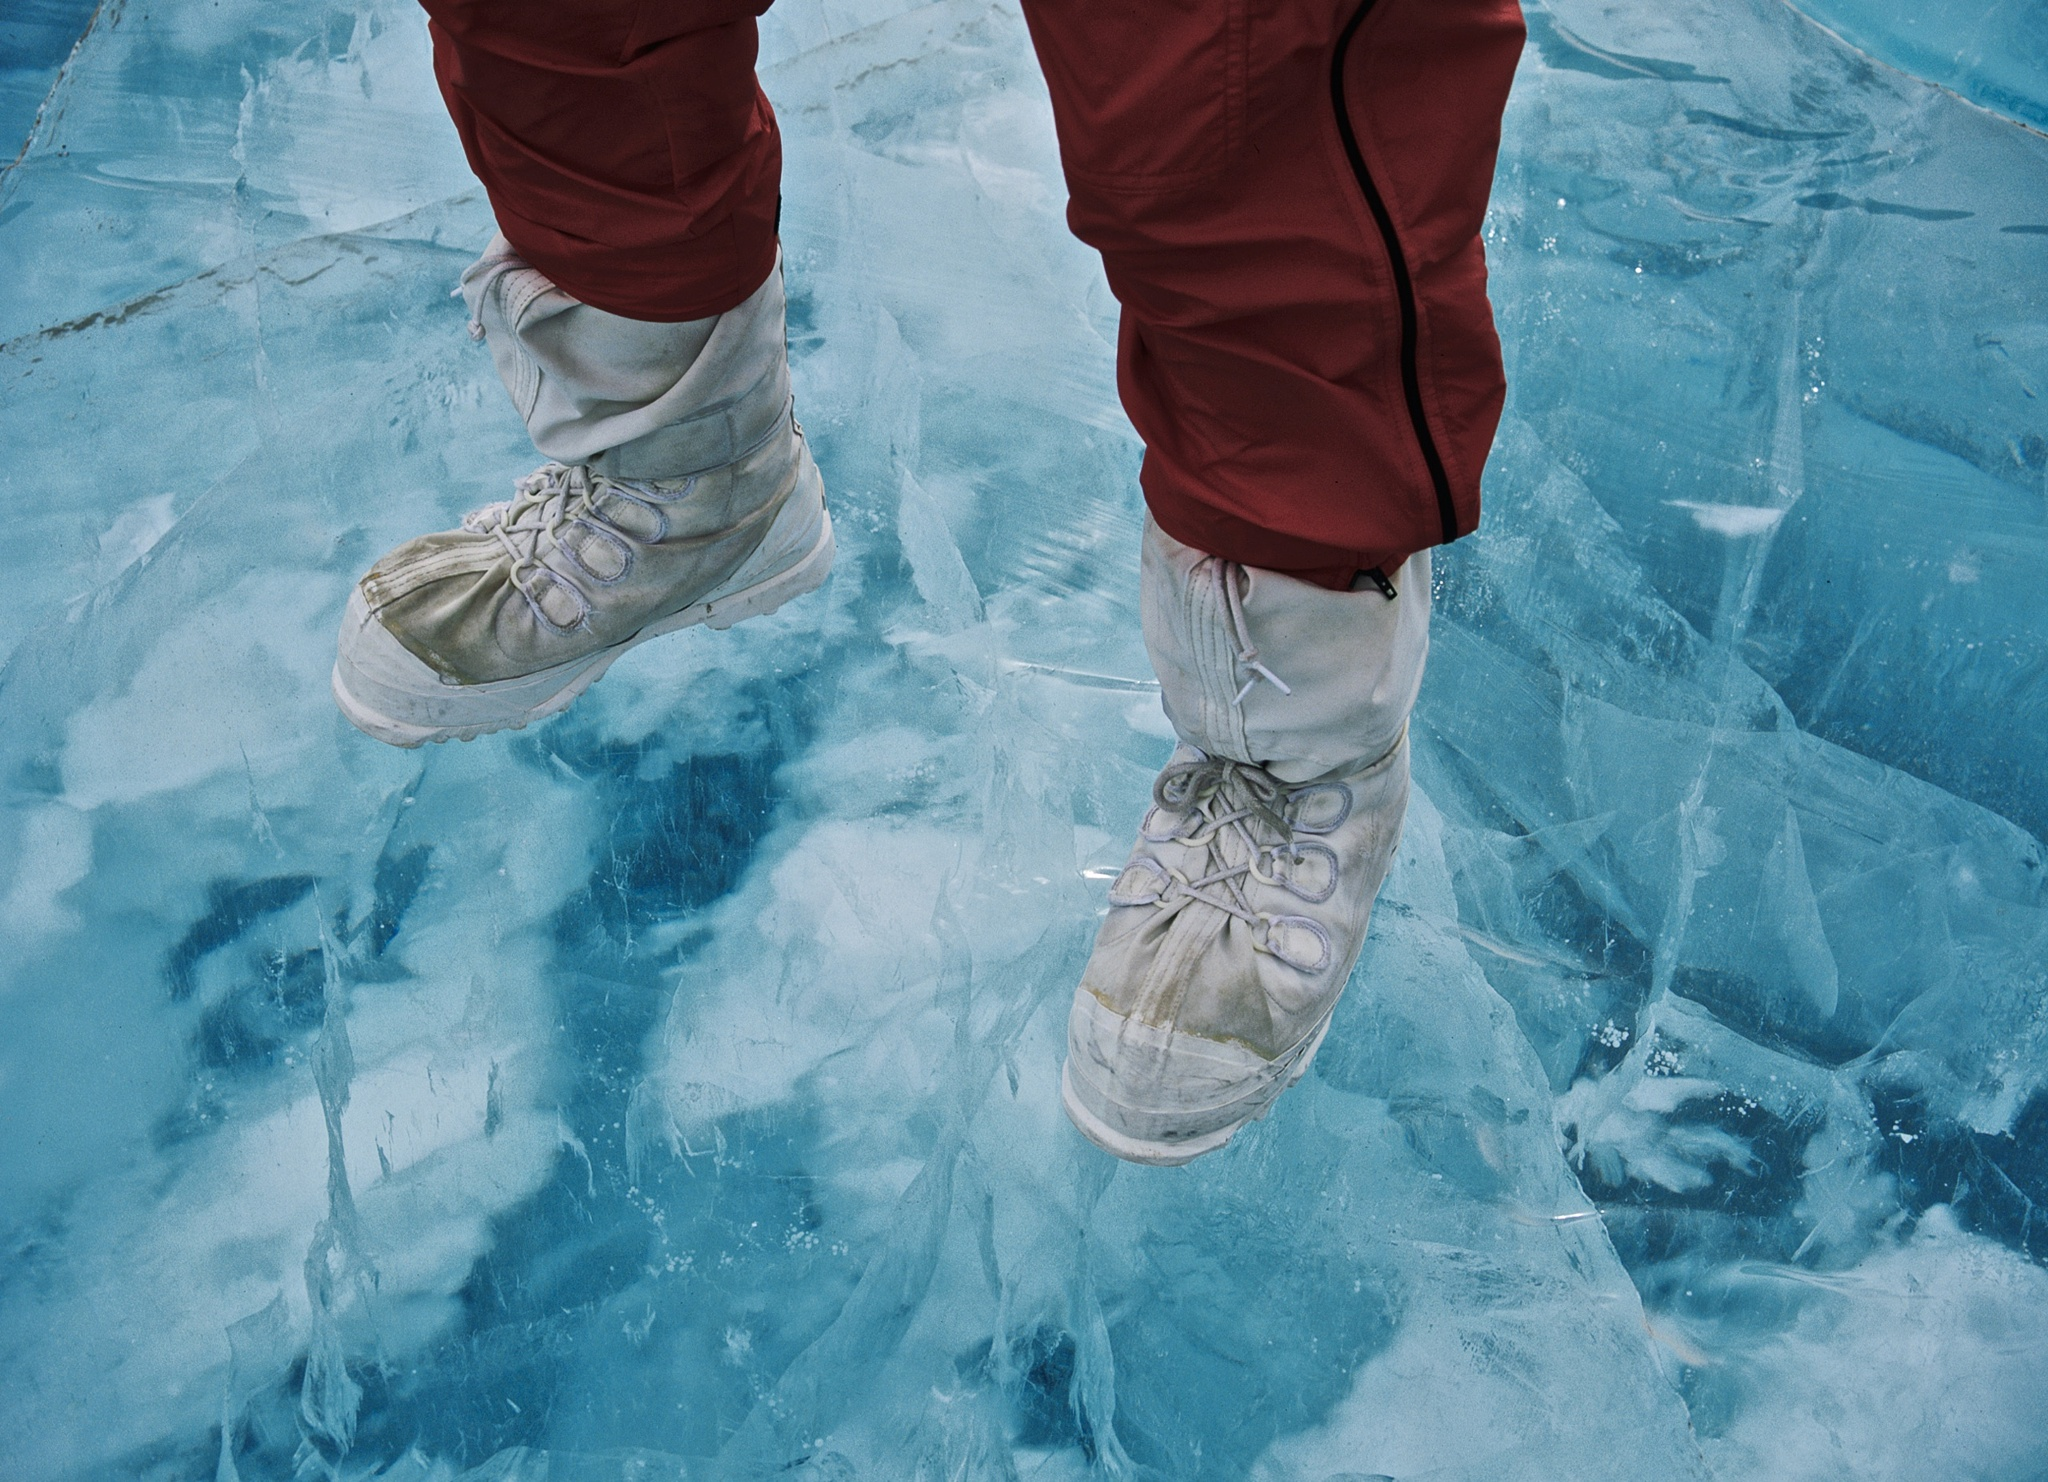 Walking on Water by Martin Hartley